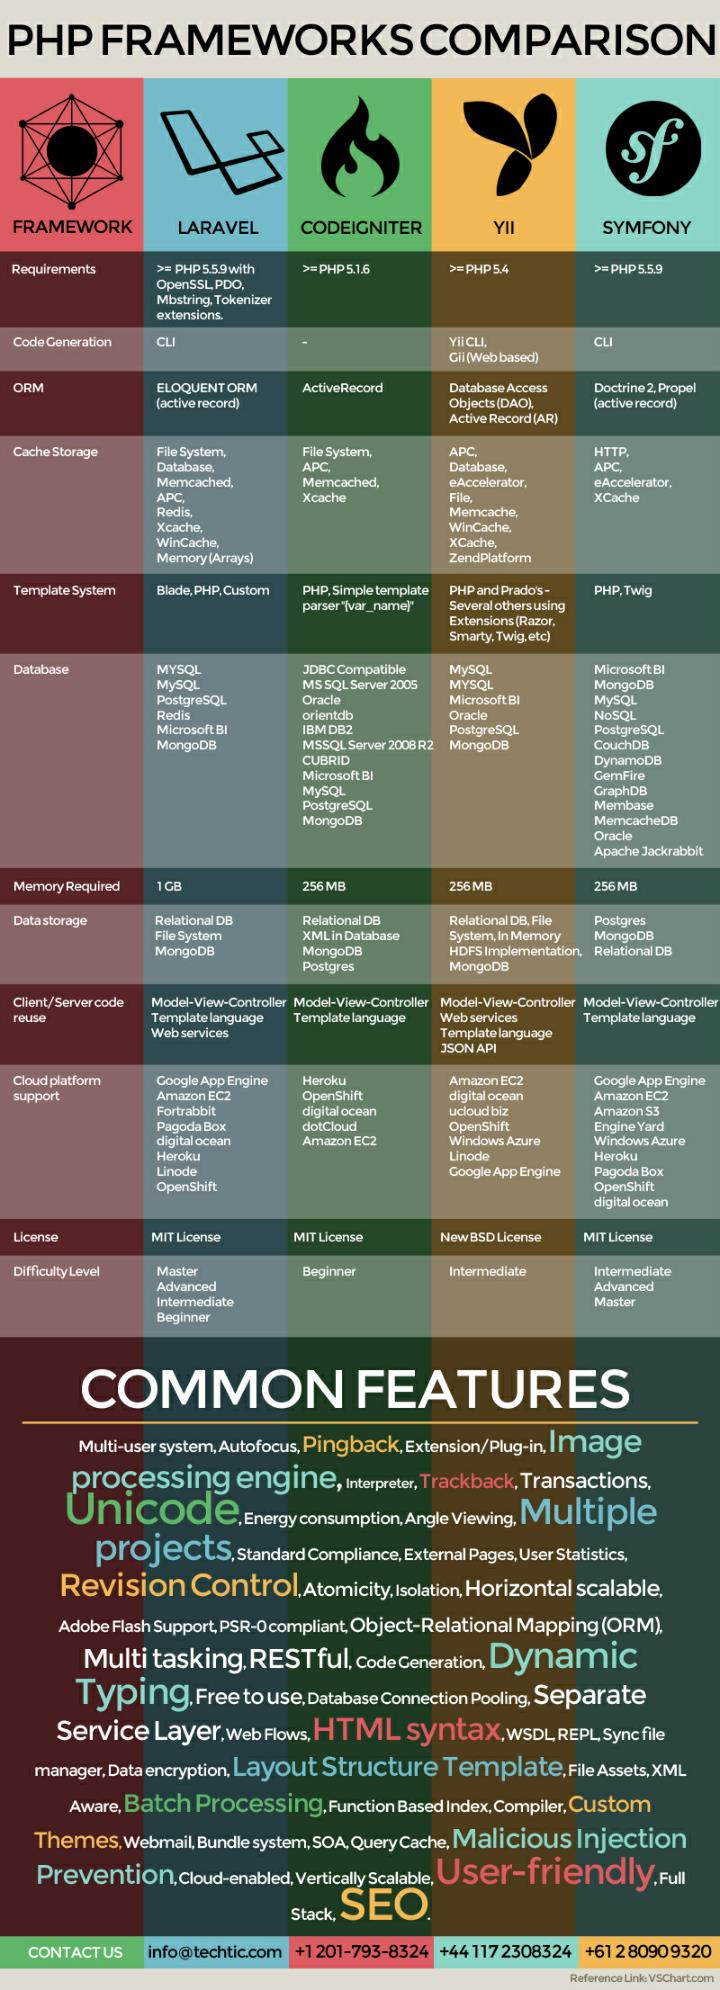 Comparison of php frameworks